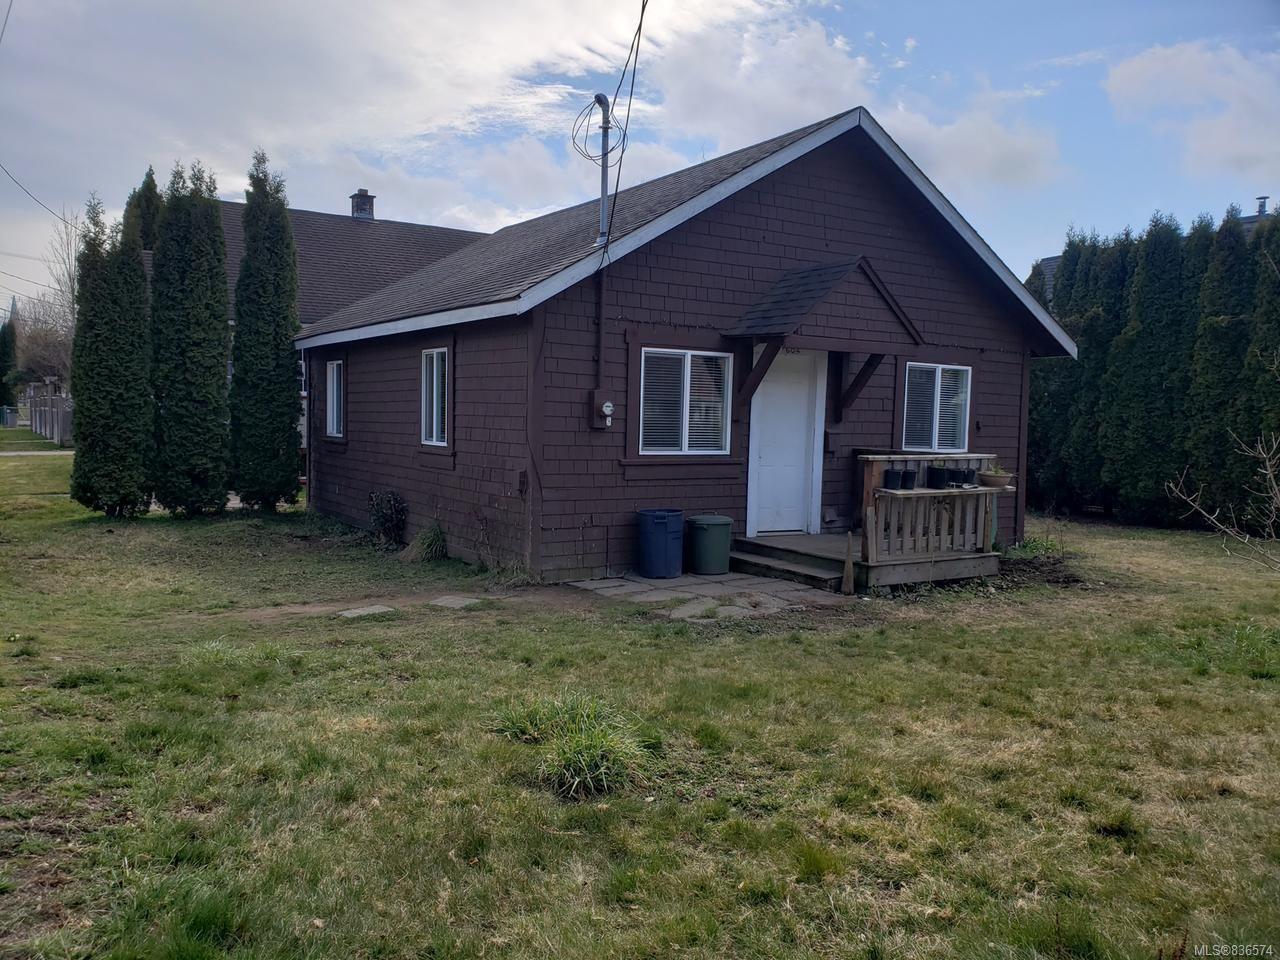 Main Photo: 604 5th St in COURTENAY: CV Courtenay City House for sale (Comox Valley)  : MLS®# 836574